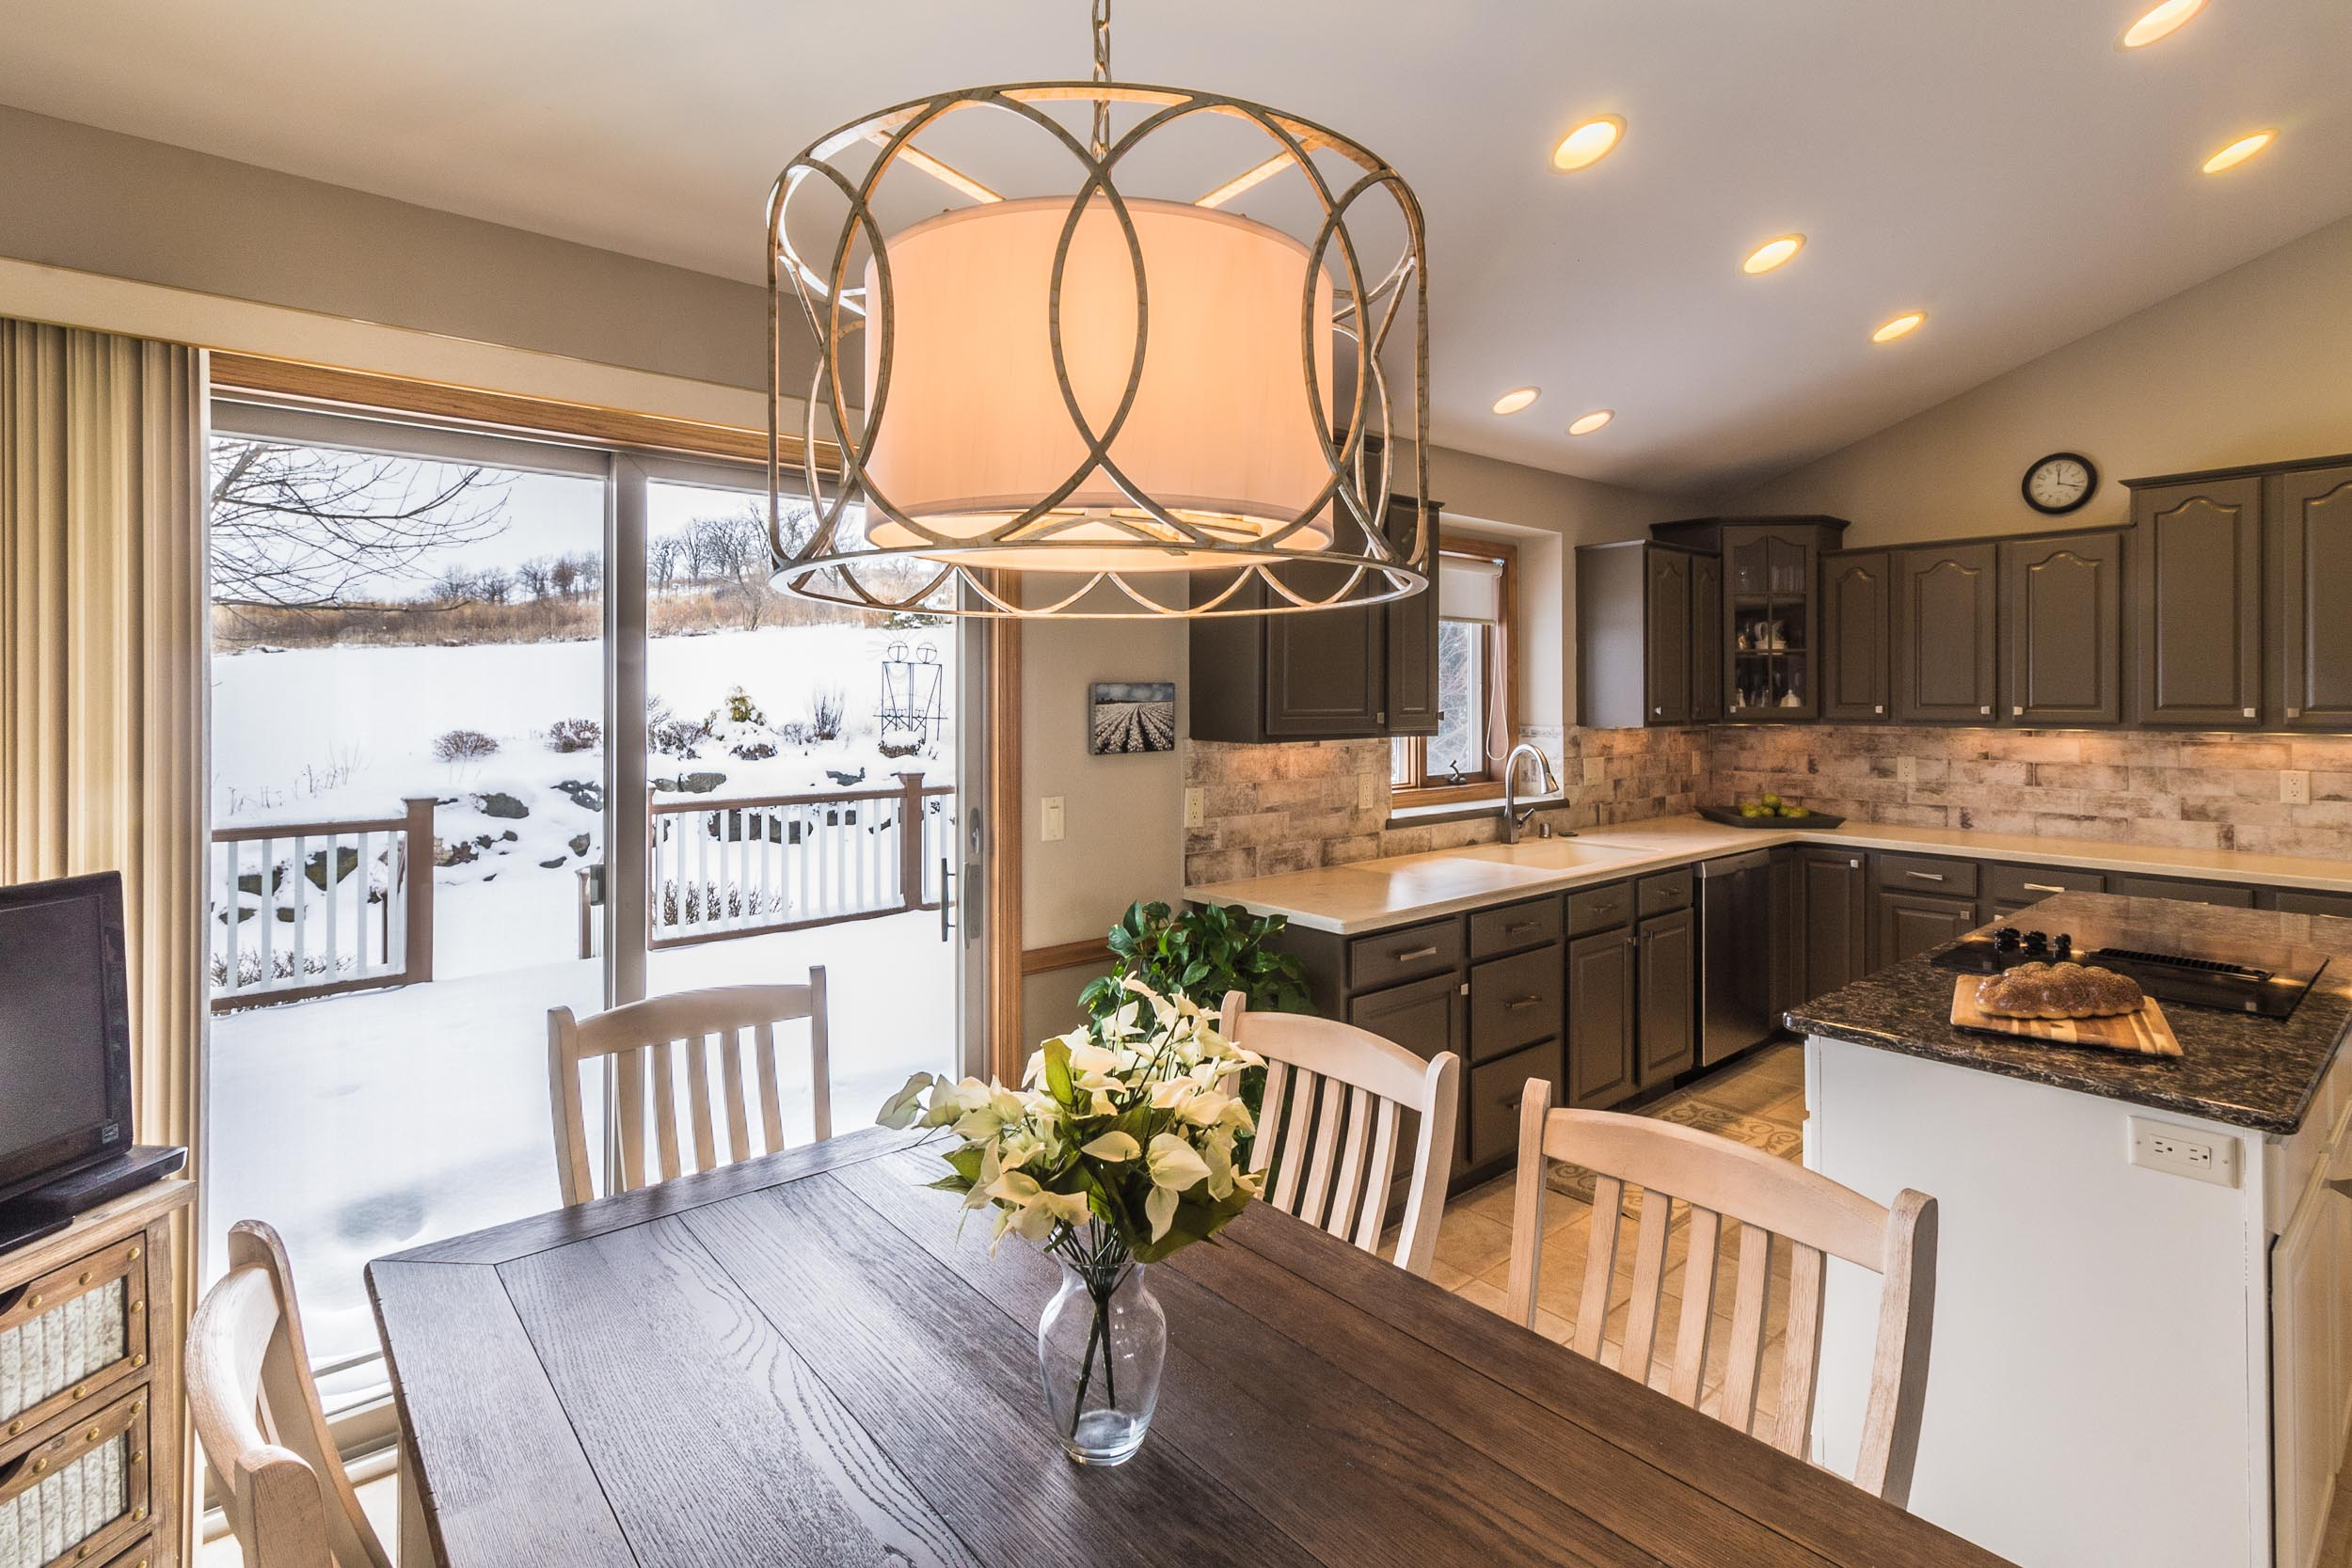 - This semi-open kitchen has an island and dinette, with openings to the foyer, stairway, and formal dining room. It has an audible connection to the adjacent living room, but is visually separated.